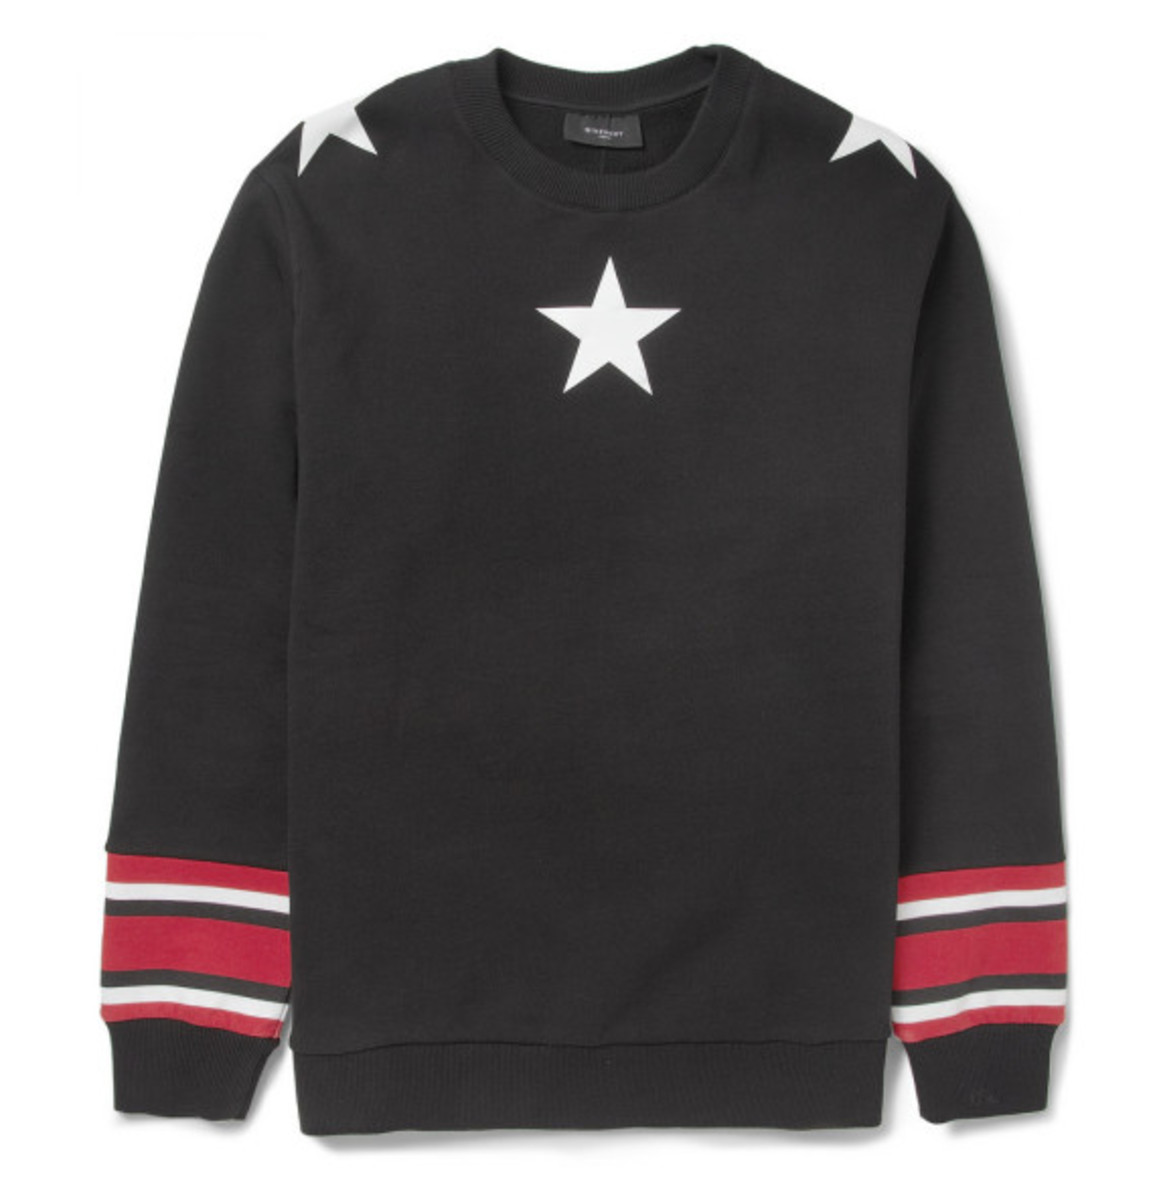 givenchy-star-printed-striped-cotton-sweatshirt-05